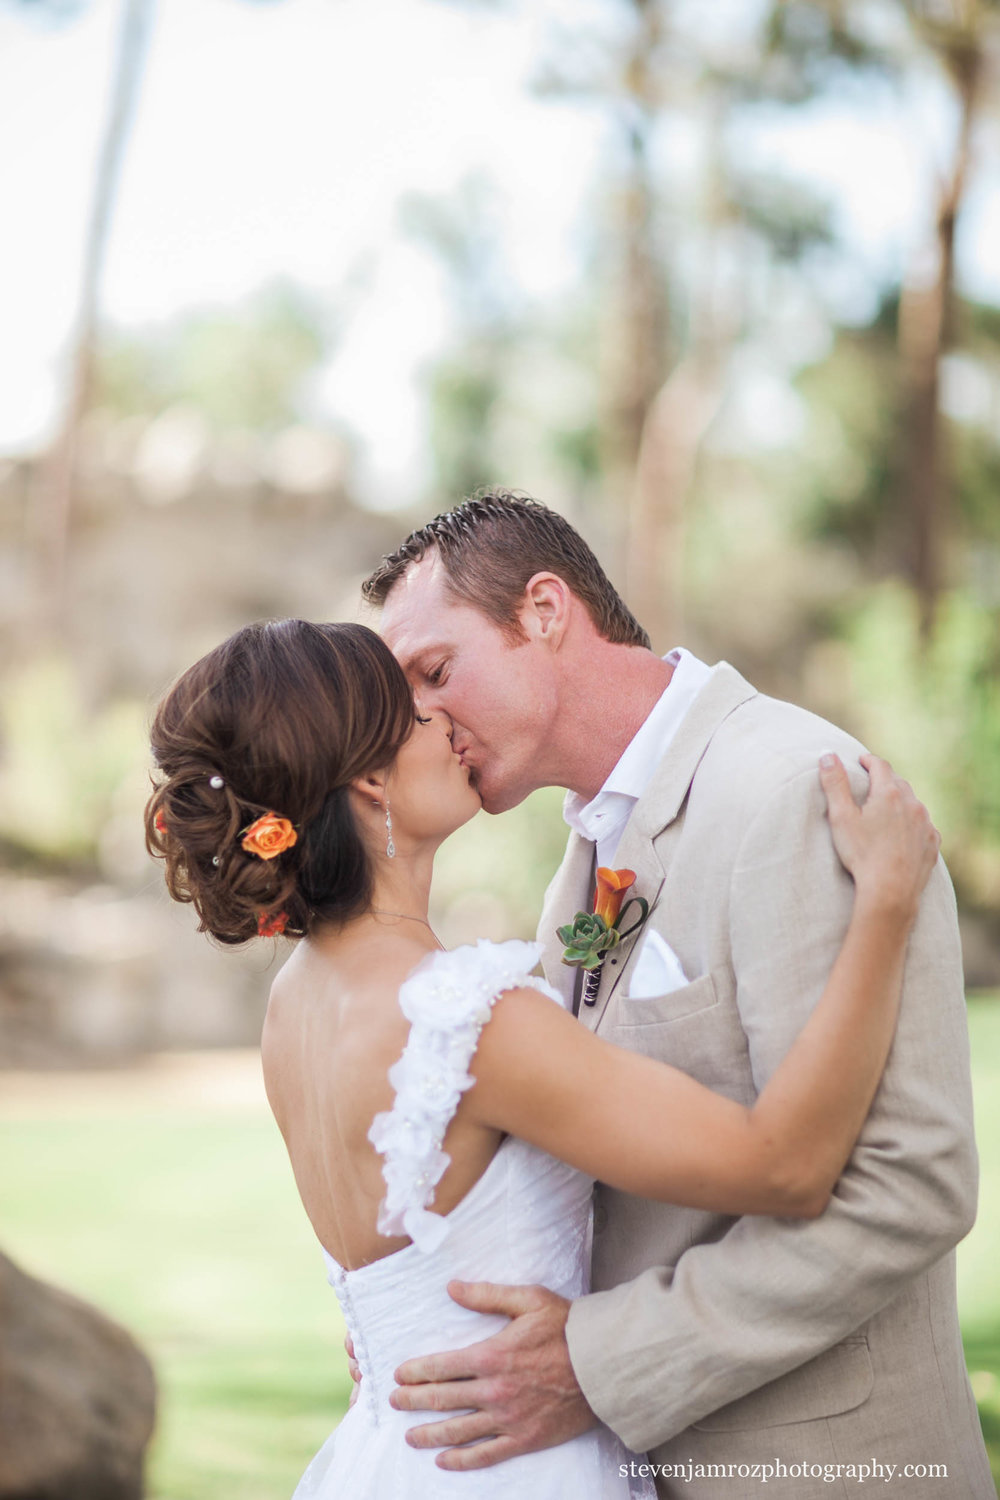 kiss-pretty-bride-groom-raleigh-steven-jamroz-photography-0008.jpg